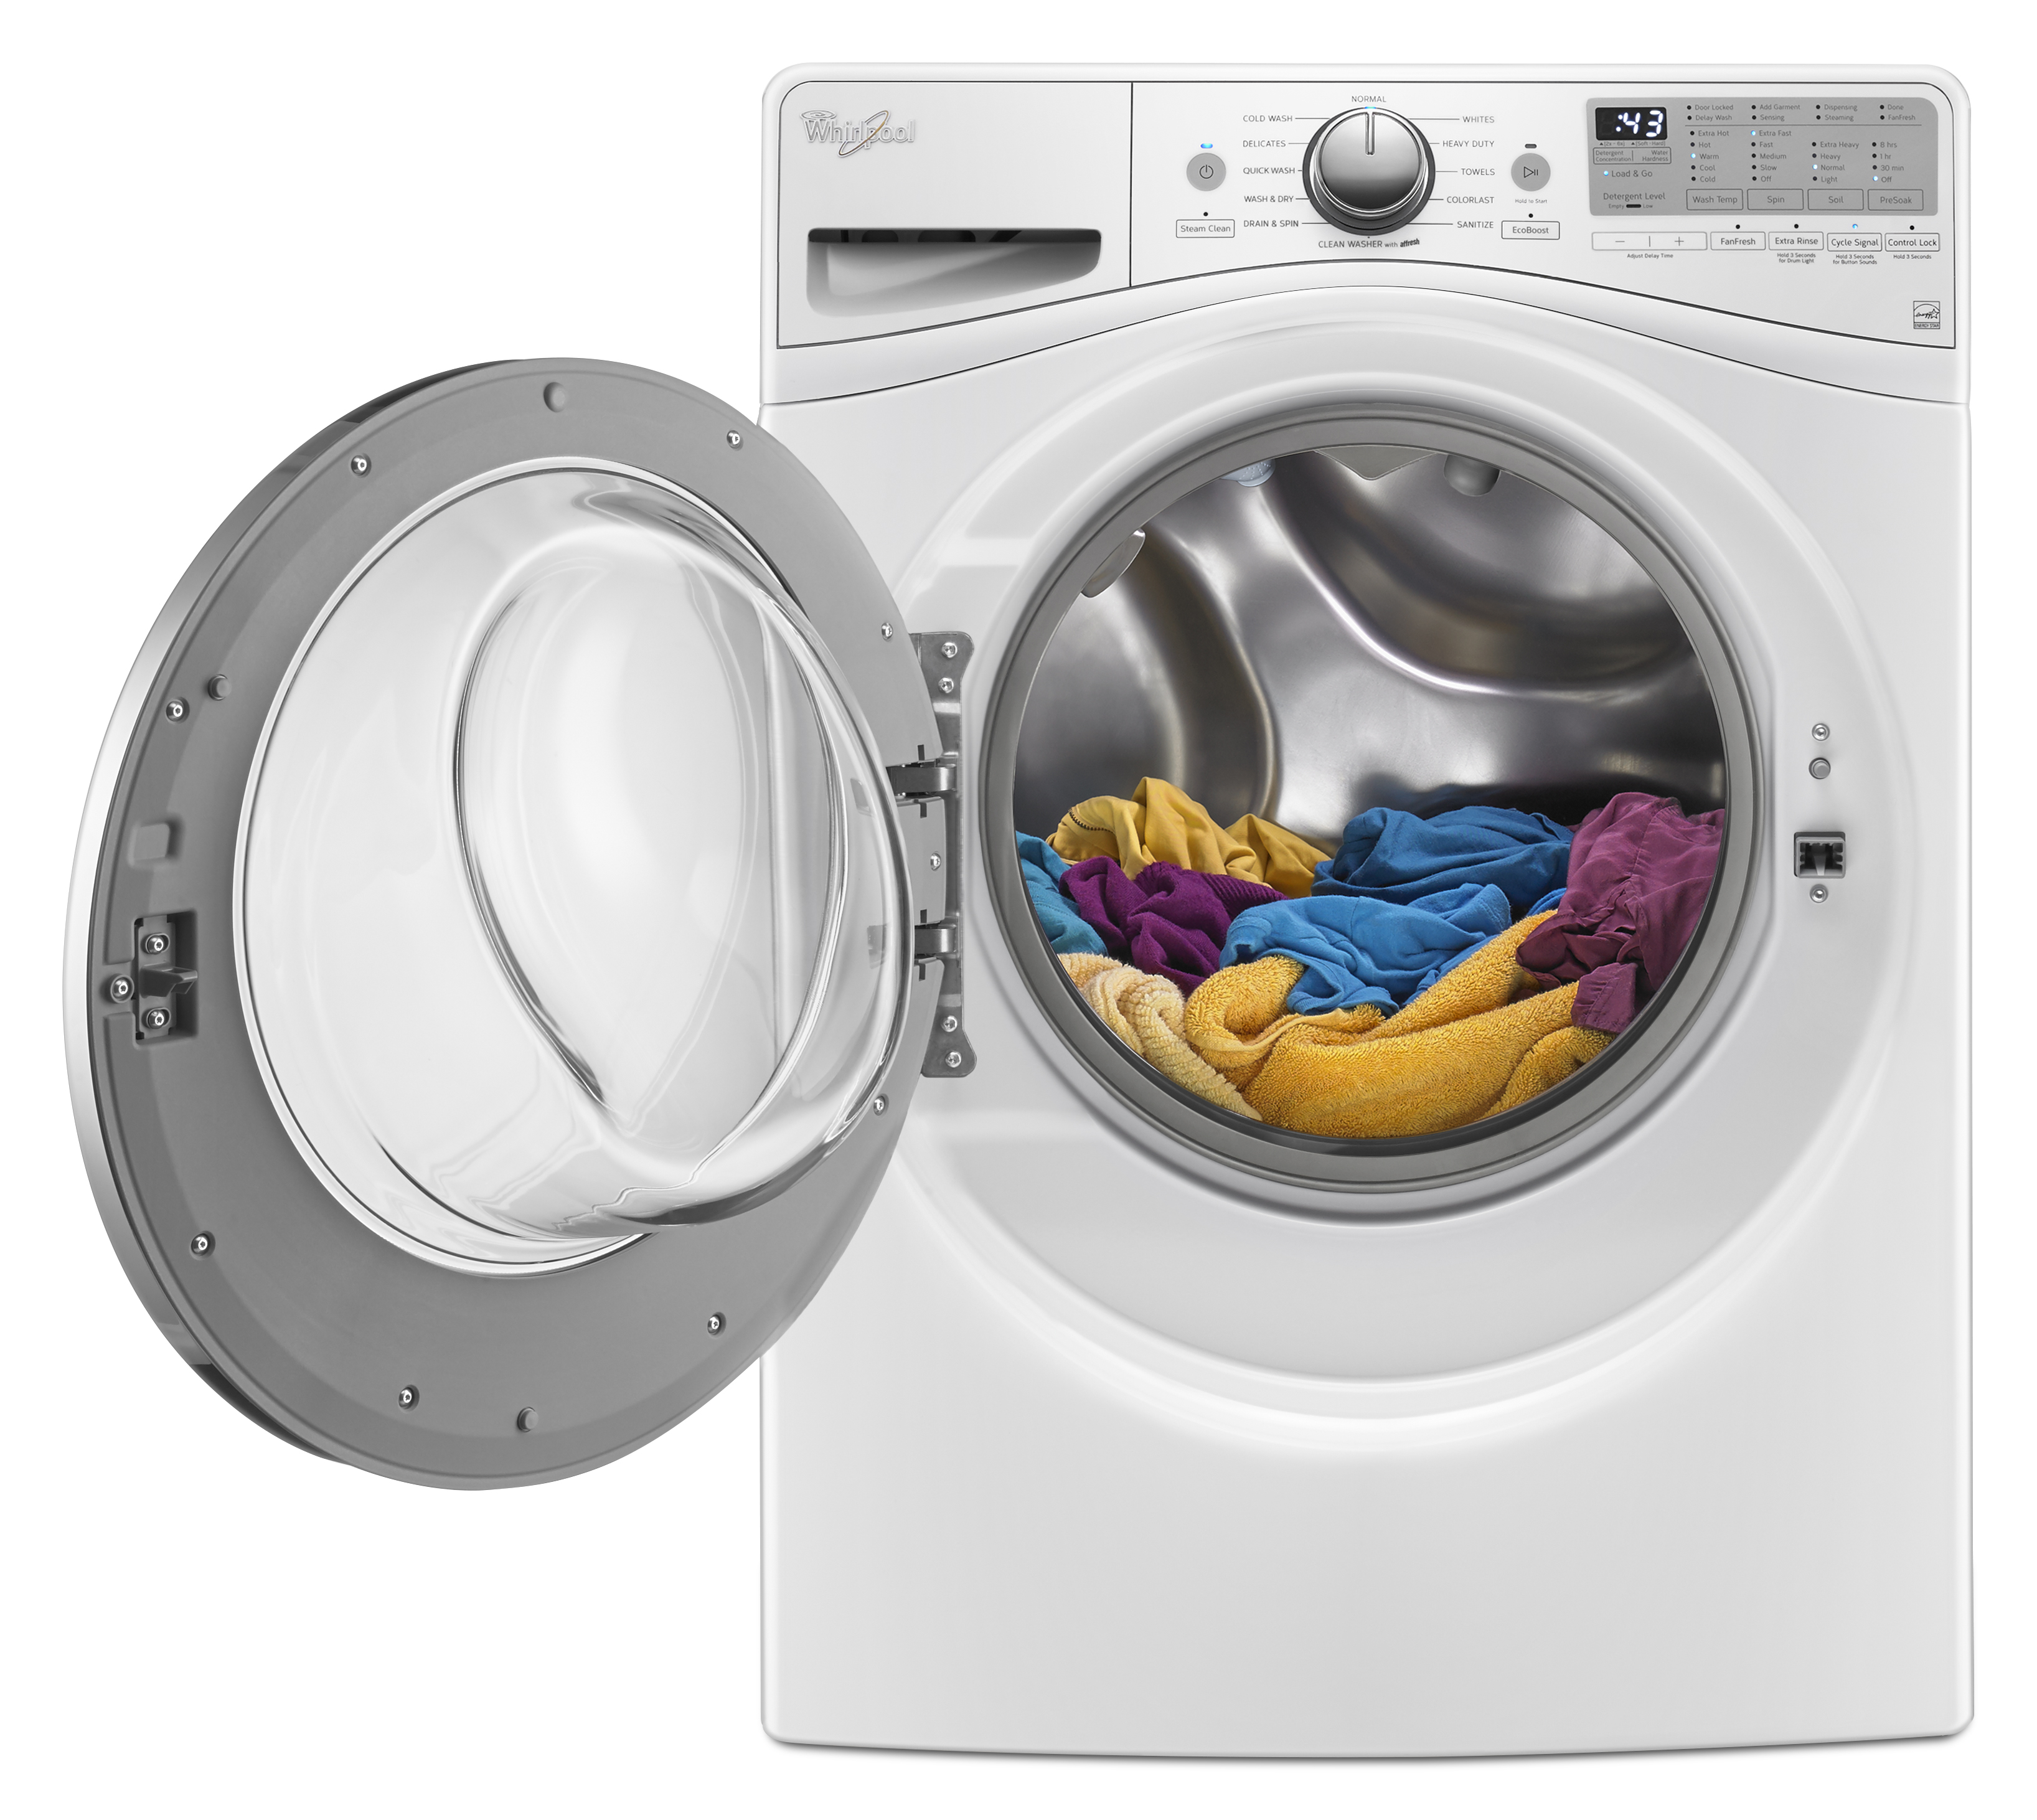 Whirlpool WFW92HEFW 4.5 cu. ft. Front Load Washer w/ Load & Go™ Bulk Dispenser - White